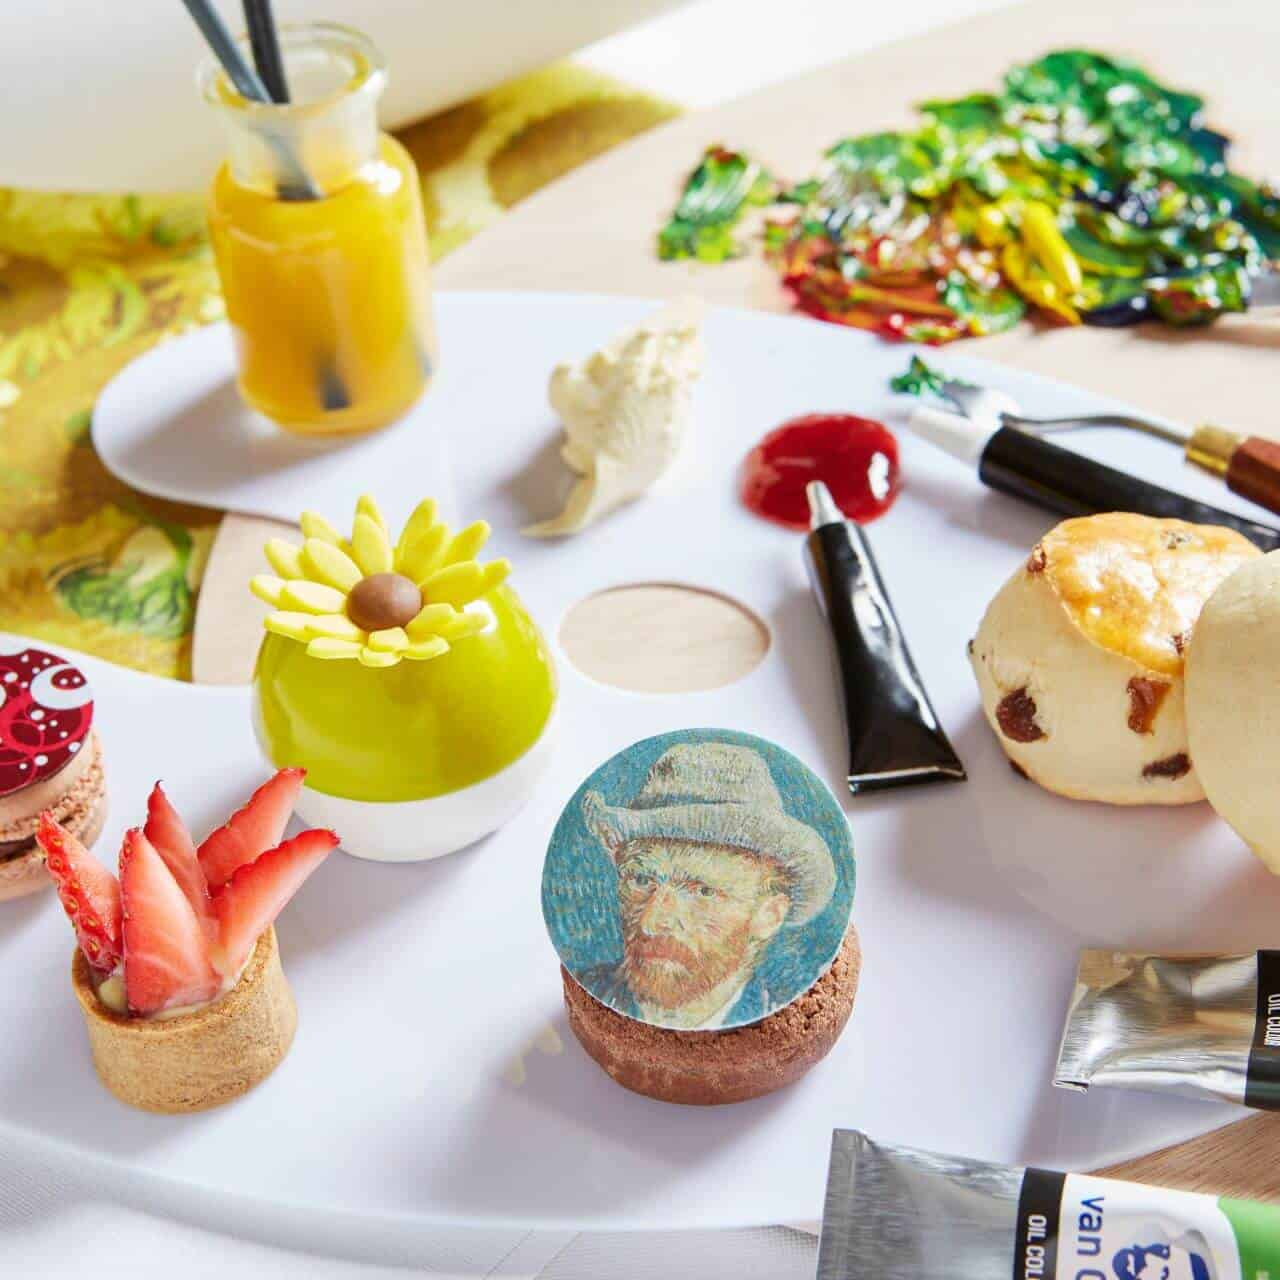 Rosewood London Van Gogh Afternoon Tea